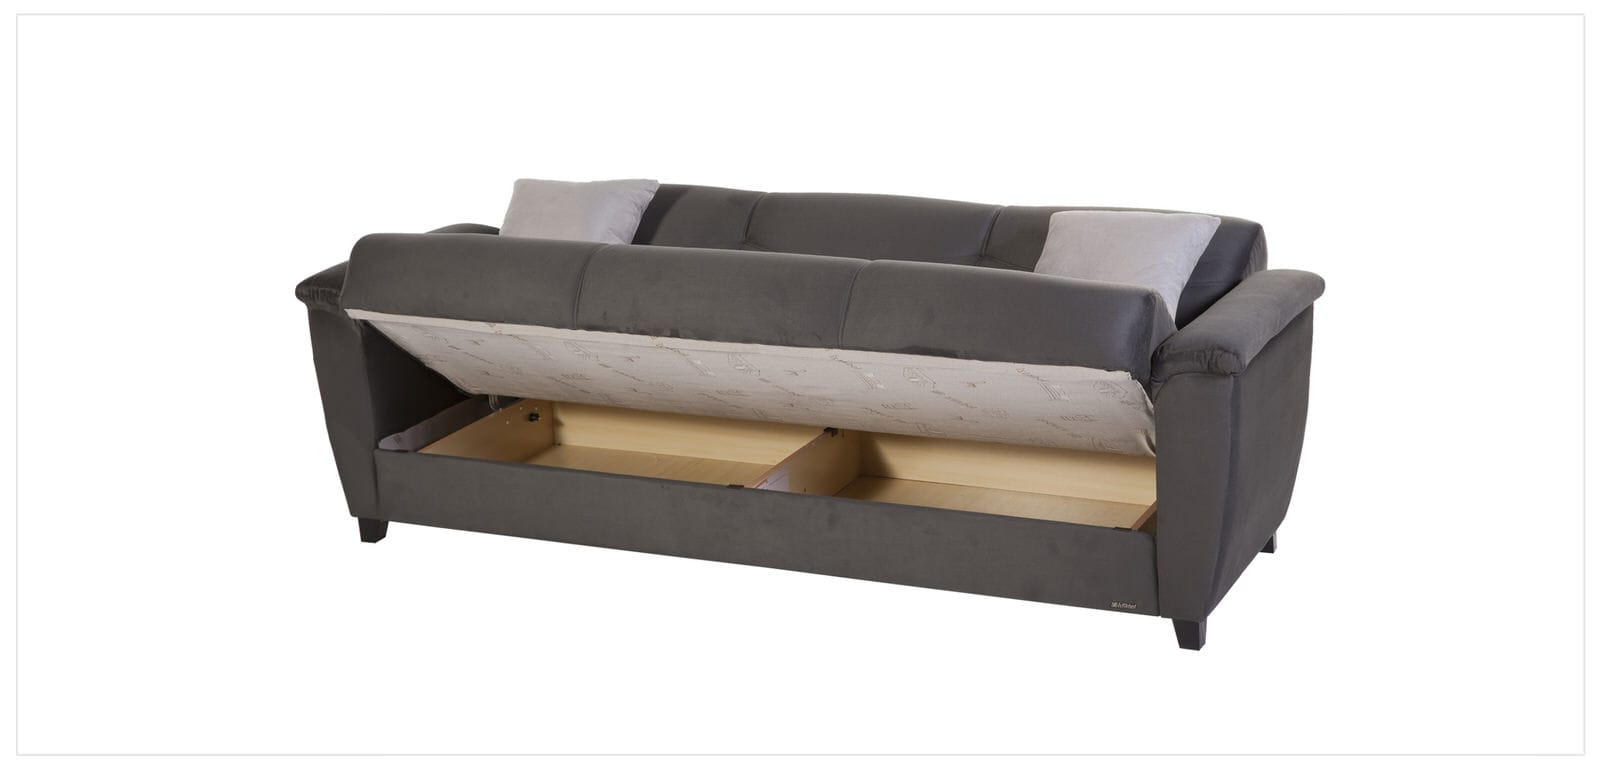 aspen convertible sectional storage sofa bed plastic covers target rainbow dark grey by istikbal